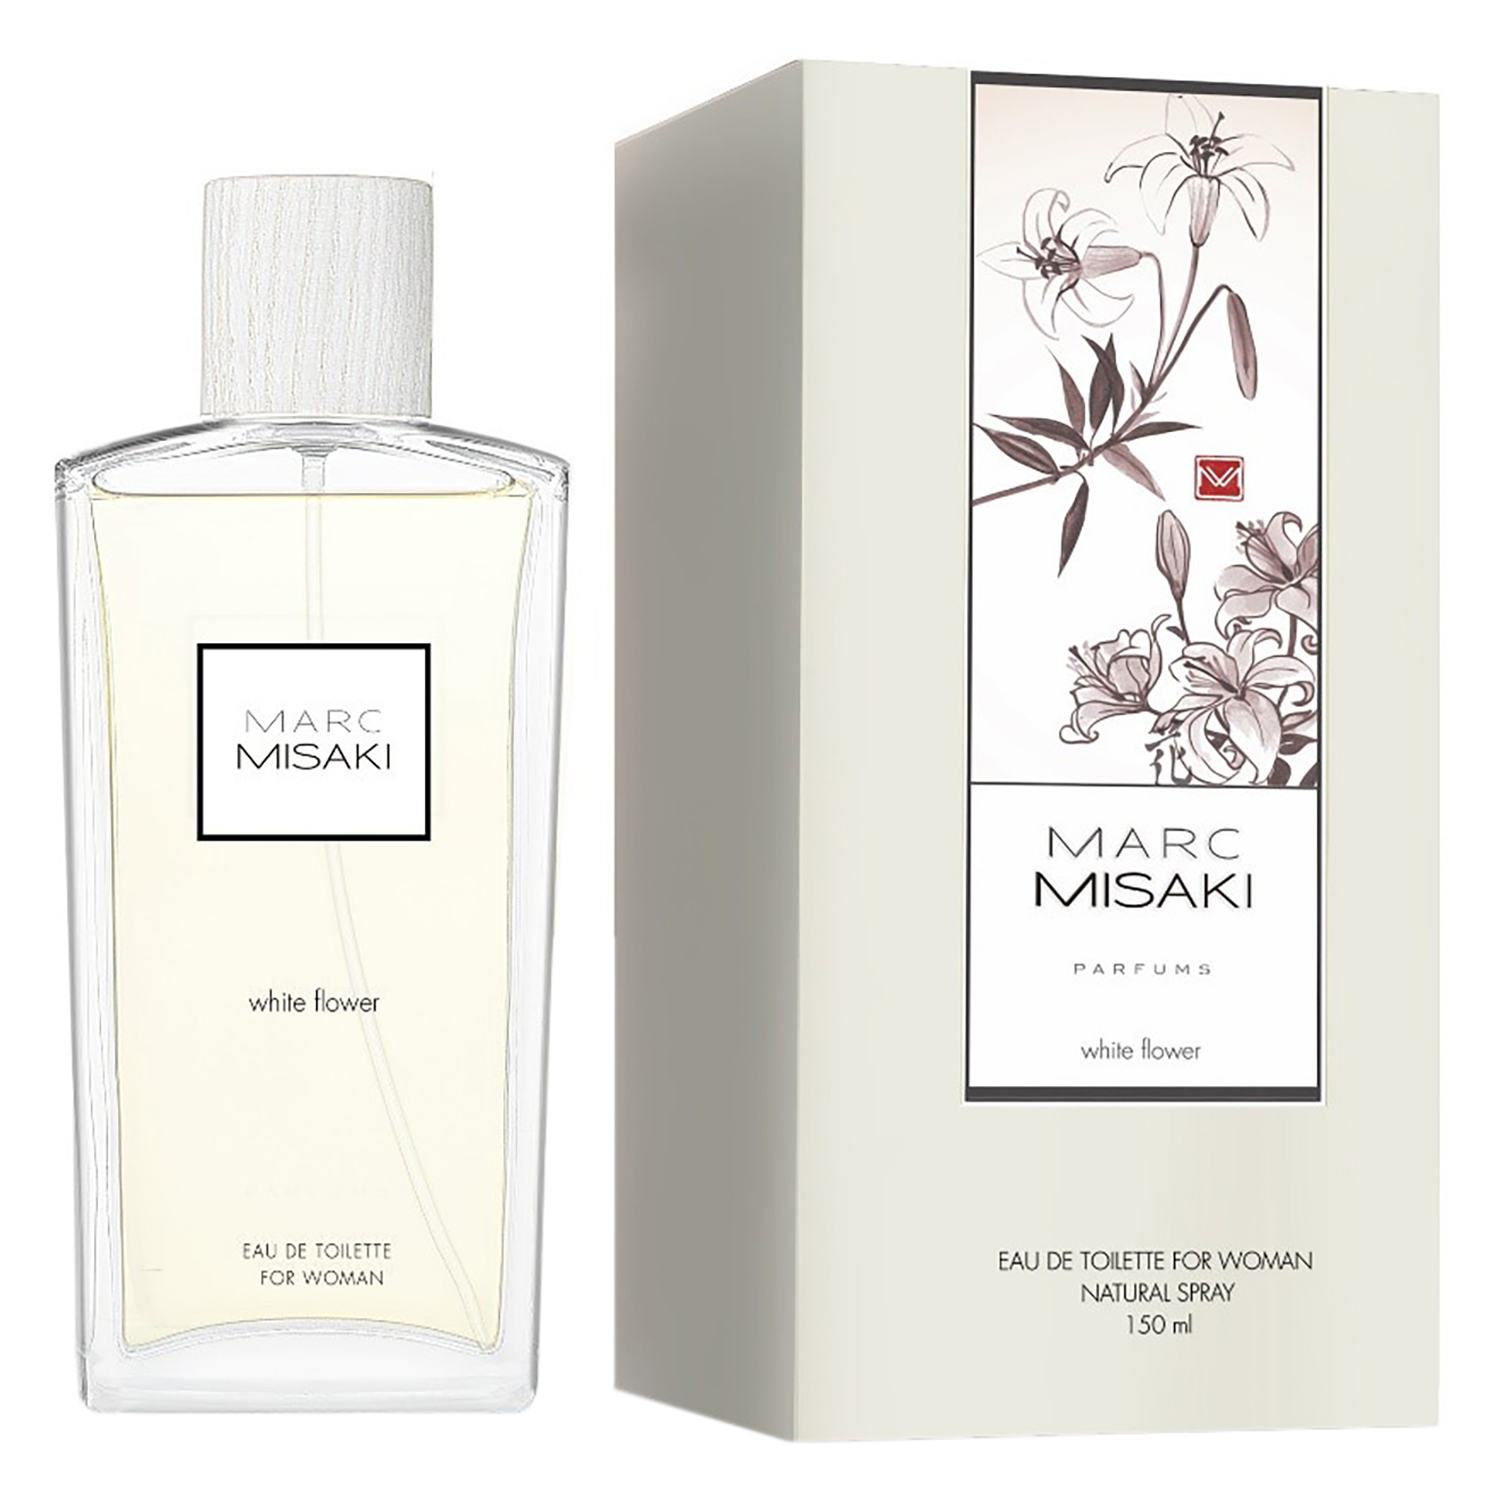 Colonia white flower para mujeres Marc Misaki 150 ml.